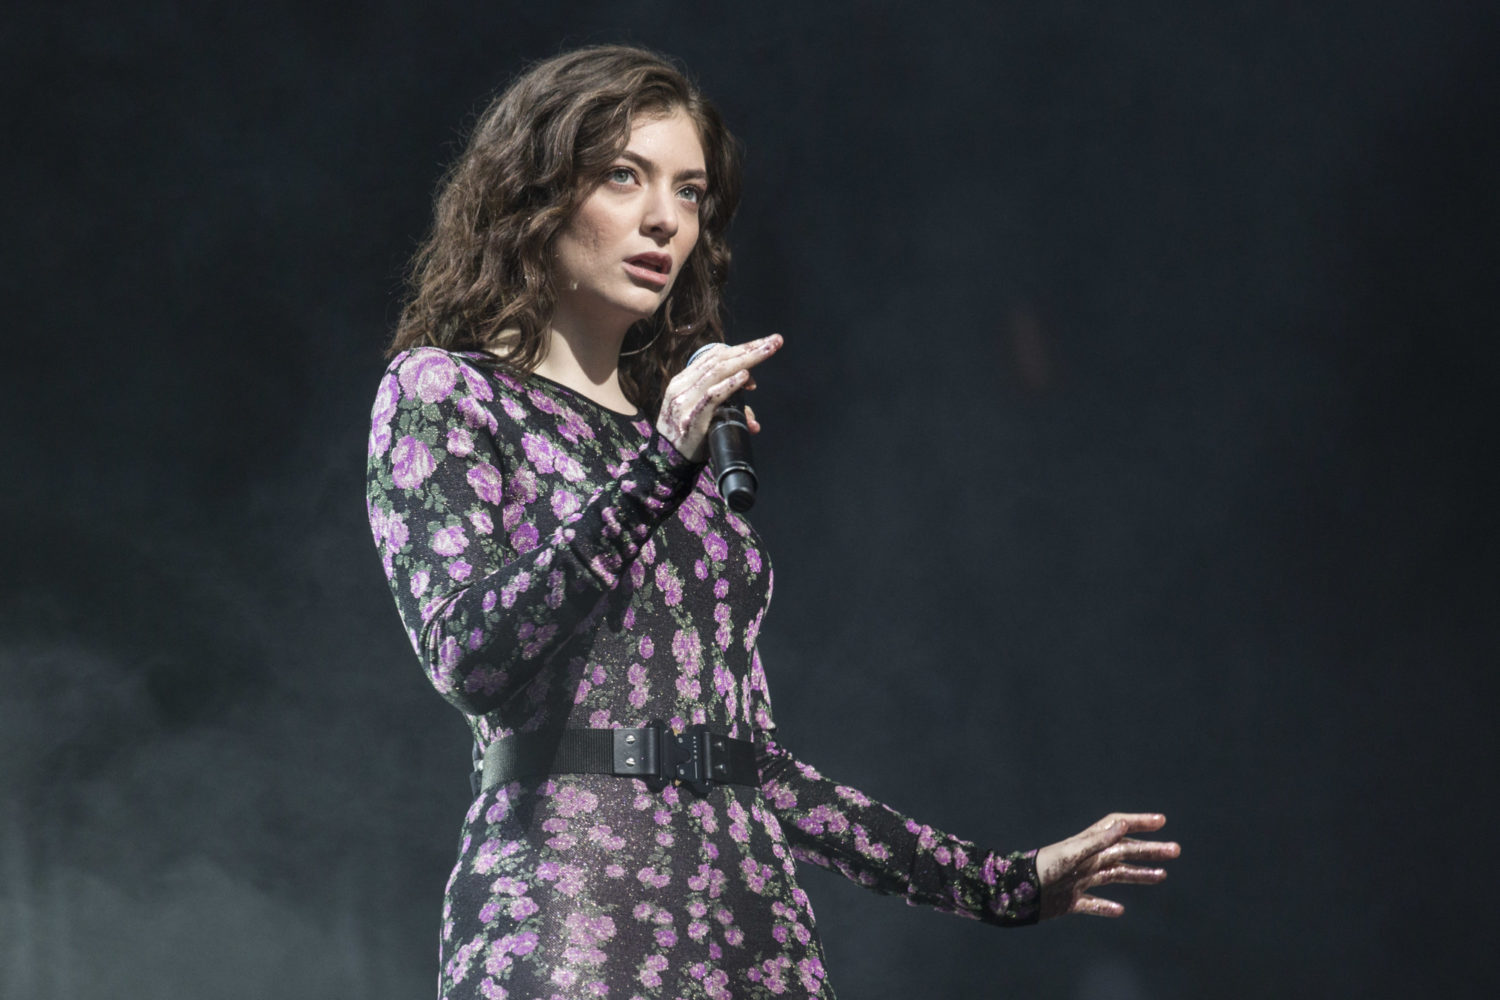 Lorde teams up with Run The Jewels for new 'Supercut' remix